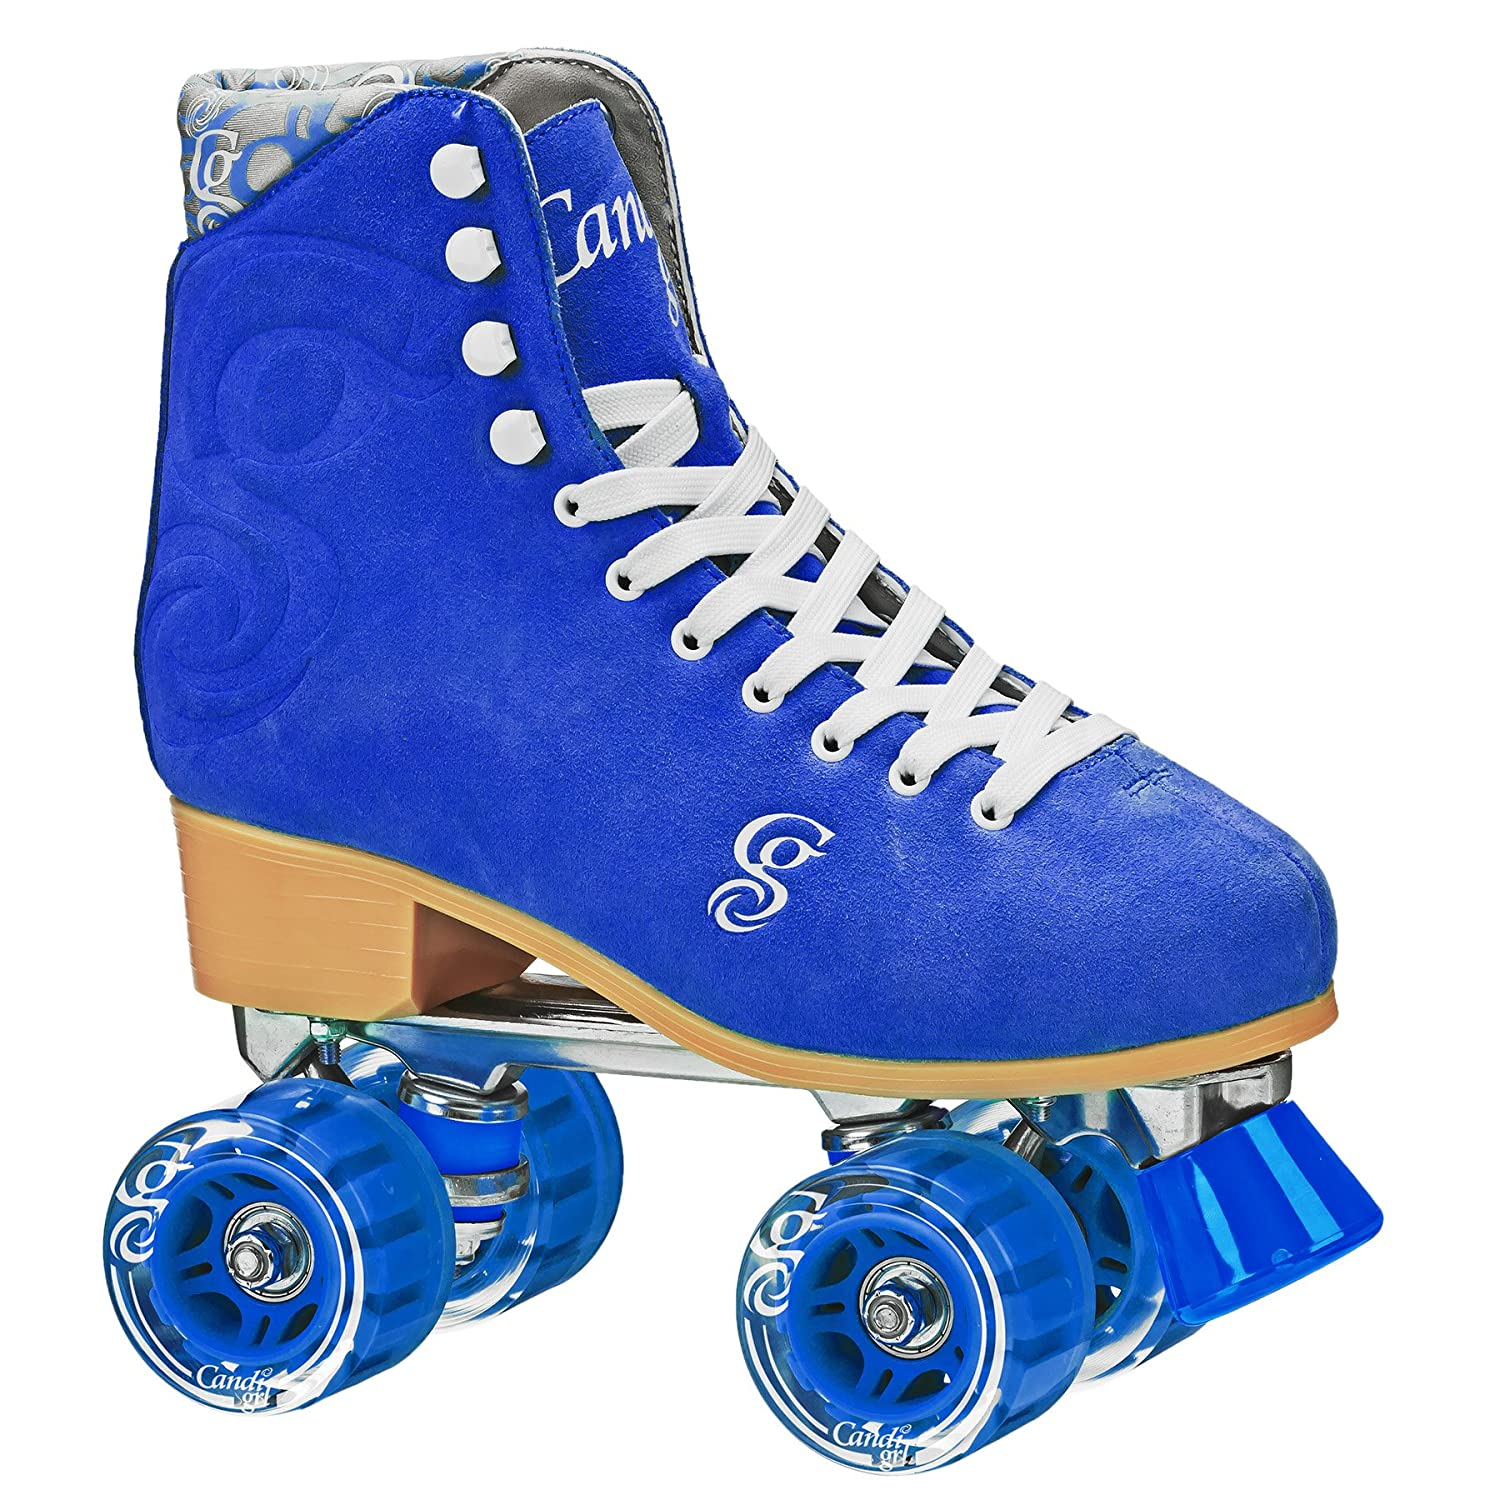 Roller derby rollerskate in blue